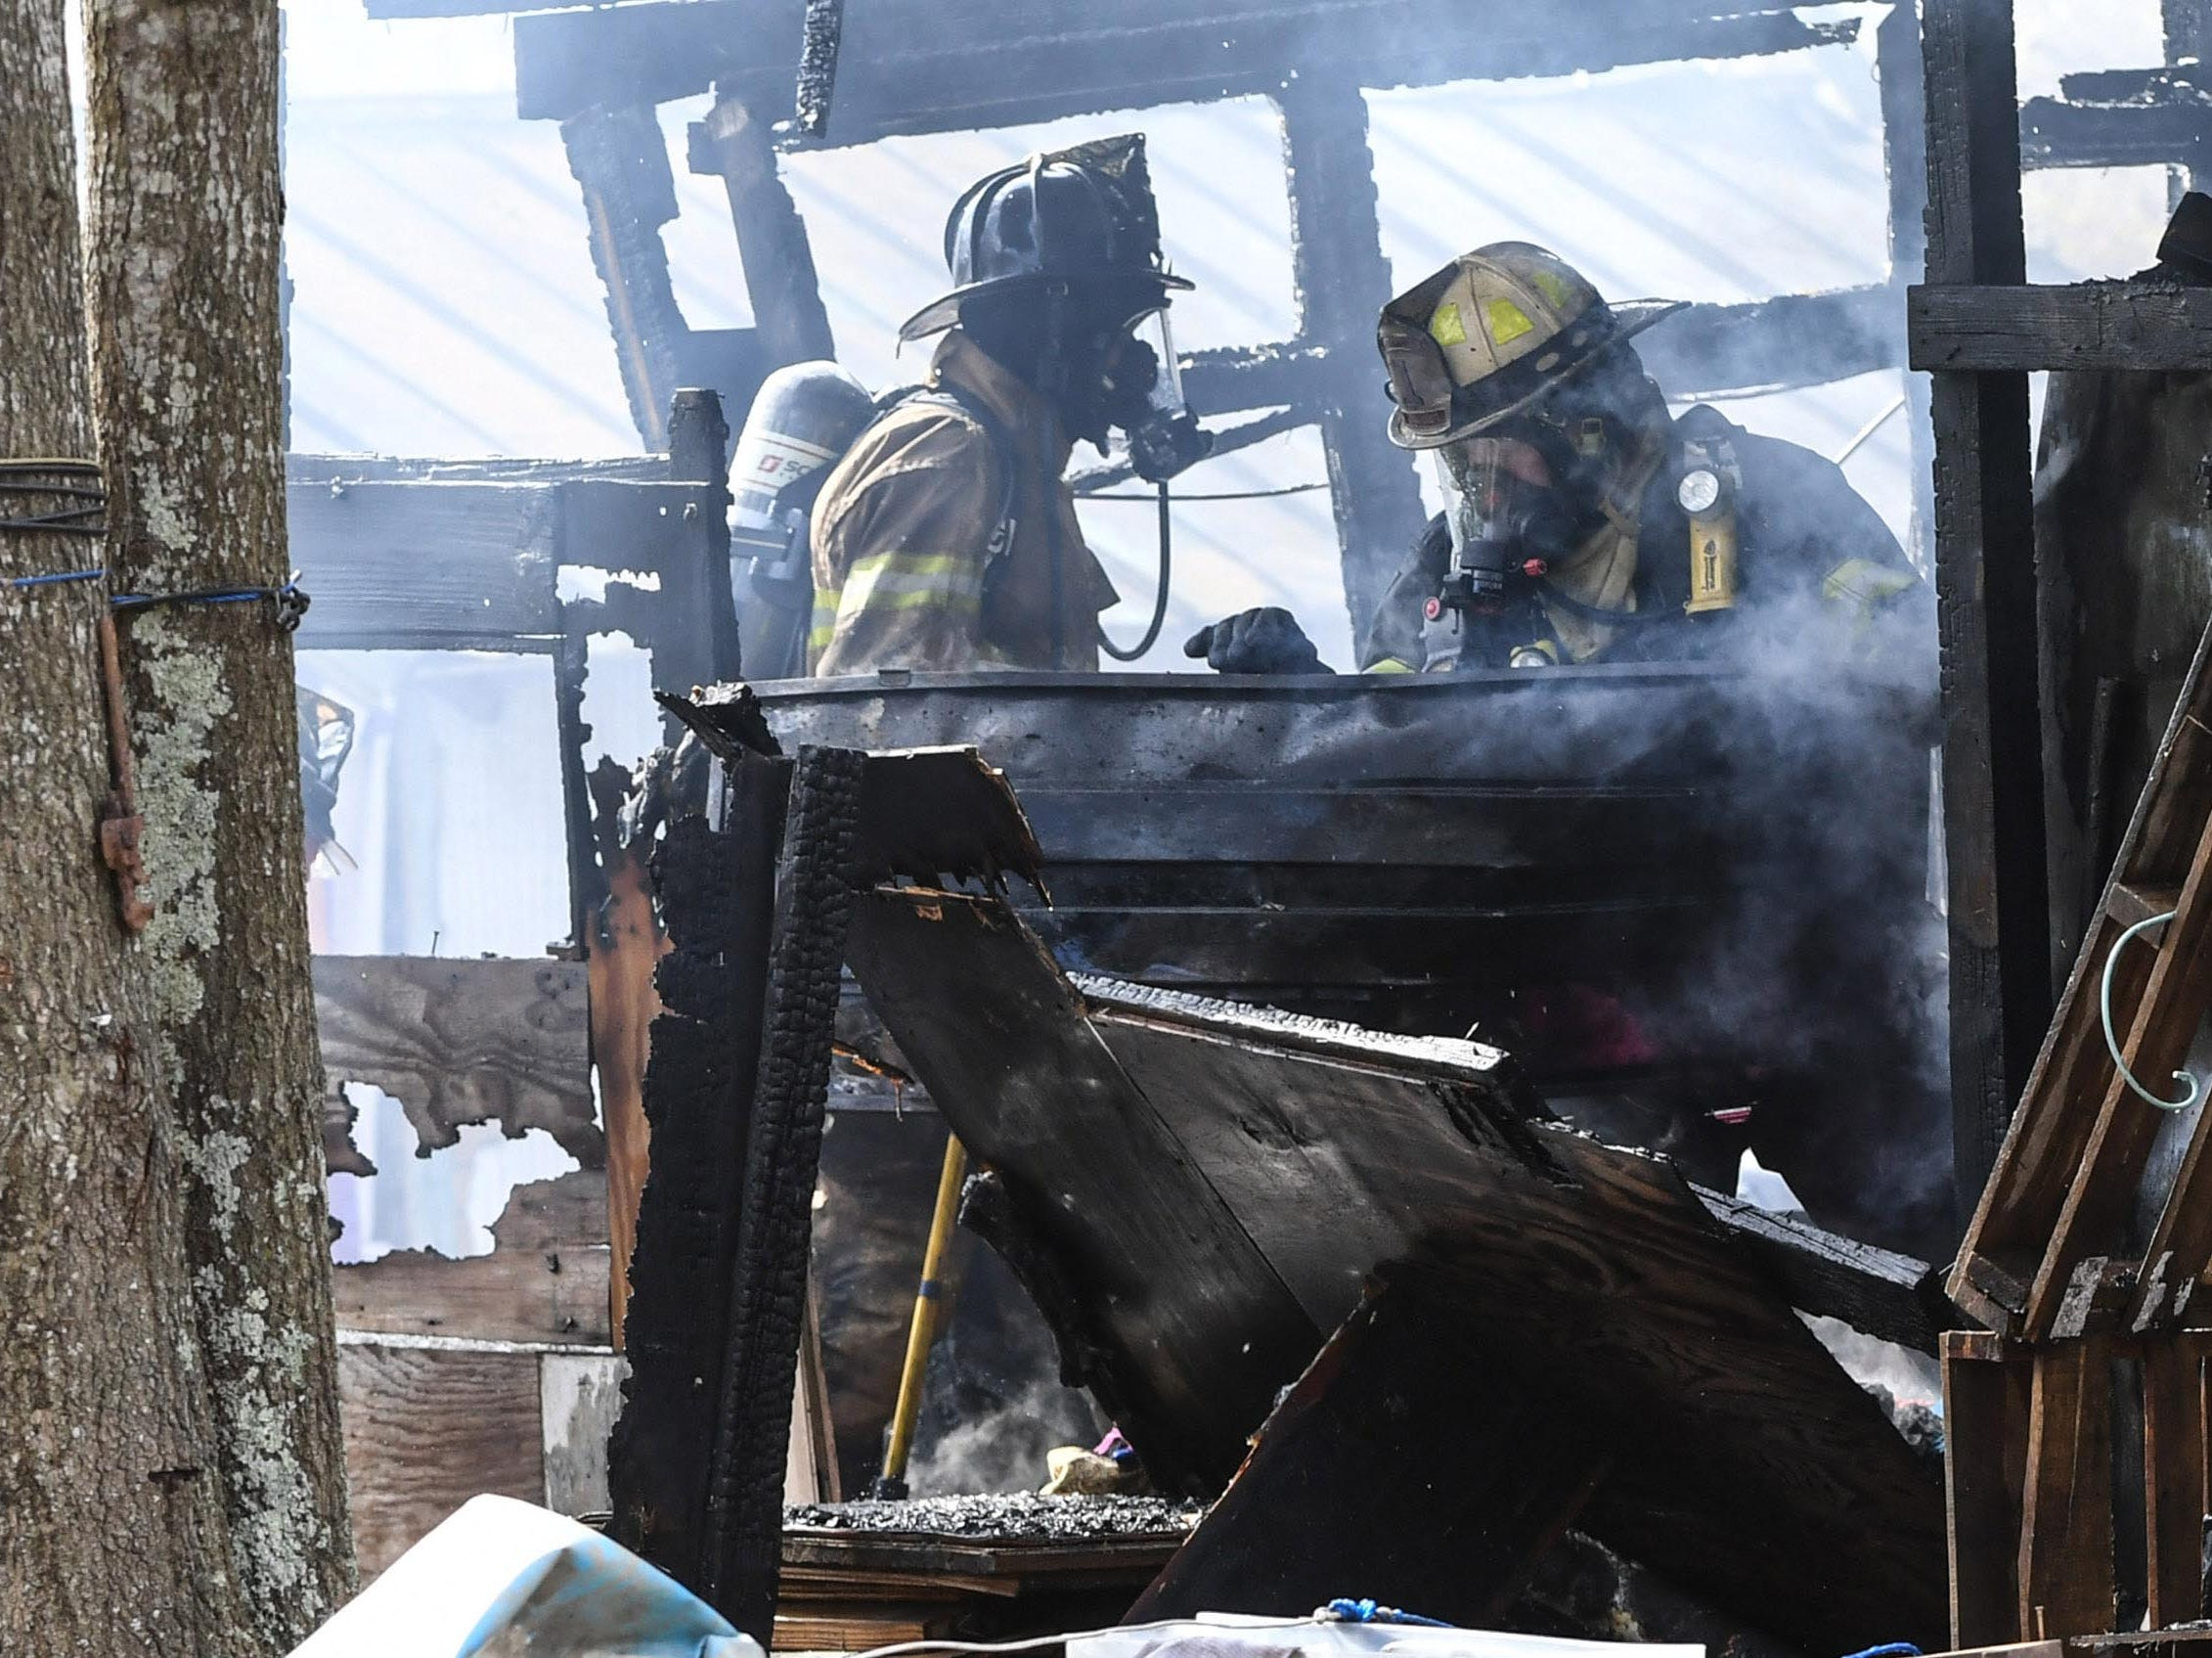 Cheddar fire responded to a call at the 800 block of Brazeale Street in Belton Tuesday, March 26, 2019. The man, woman, and dog at the home were unharmed as Belton fire, Rock Springs and Belton rescue also responded. Anderson County fire investigator Wendall Marshall was at the scene of the fire under investigation.